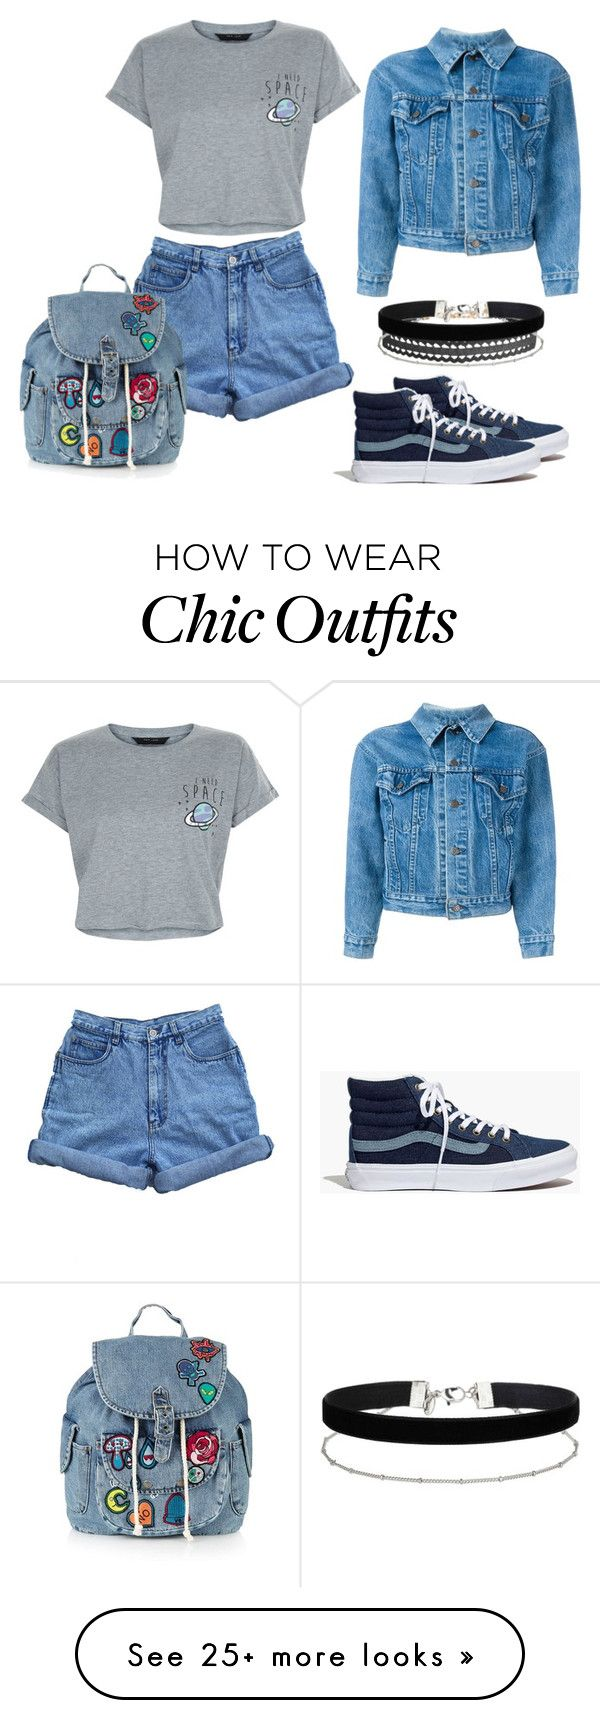 """""""Bez naslova #46"""" by emiiina on Polyvore featuring Bill Blass, New Look, Madewell, Humble Chic, Miss Selfridge, Levi's and Topshop"""